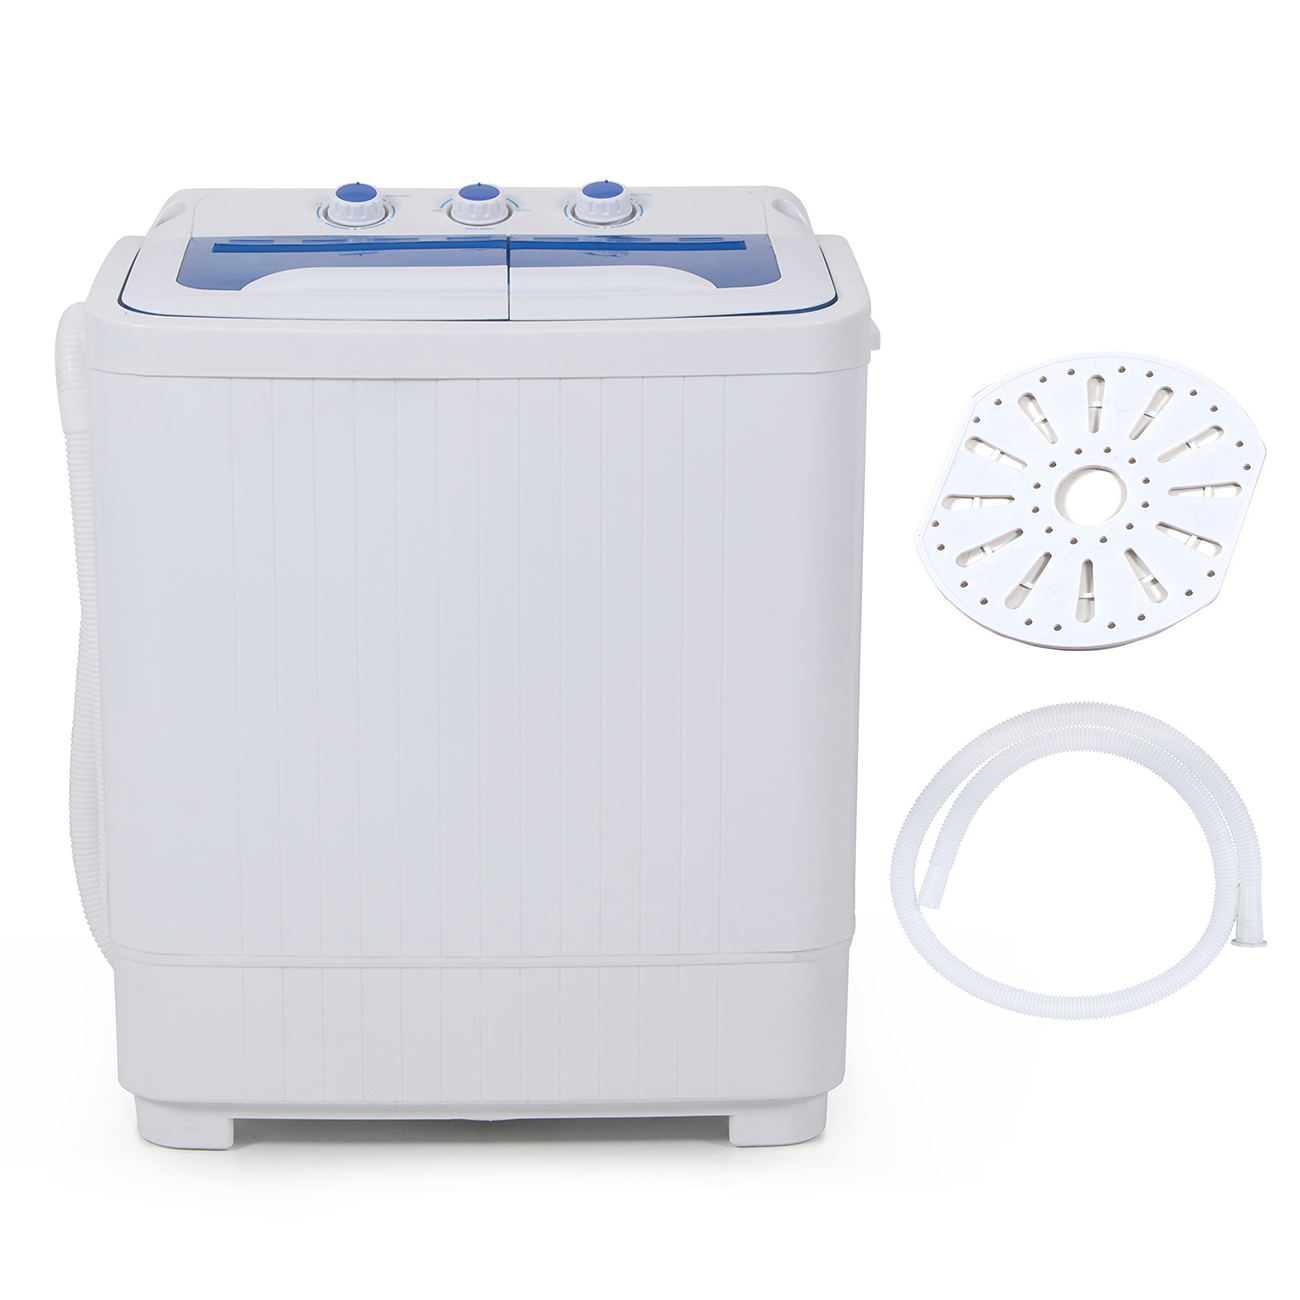 Portable mini rv dorms compact dual timer washing machines for Portable washer and dryer